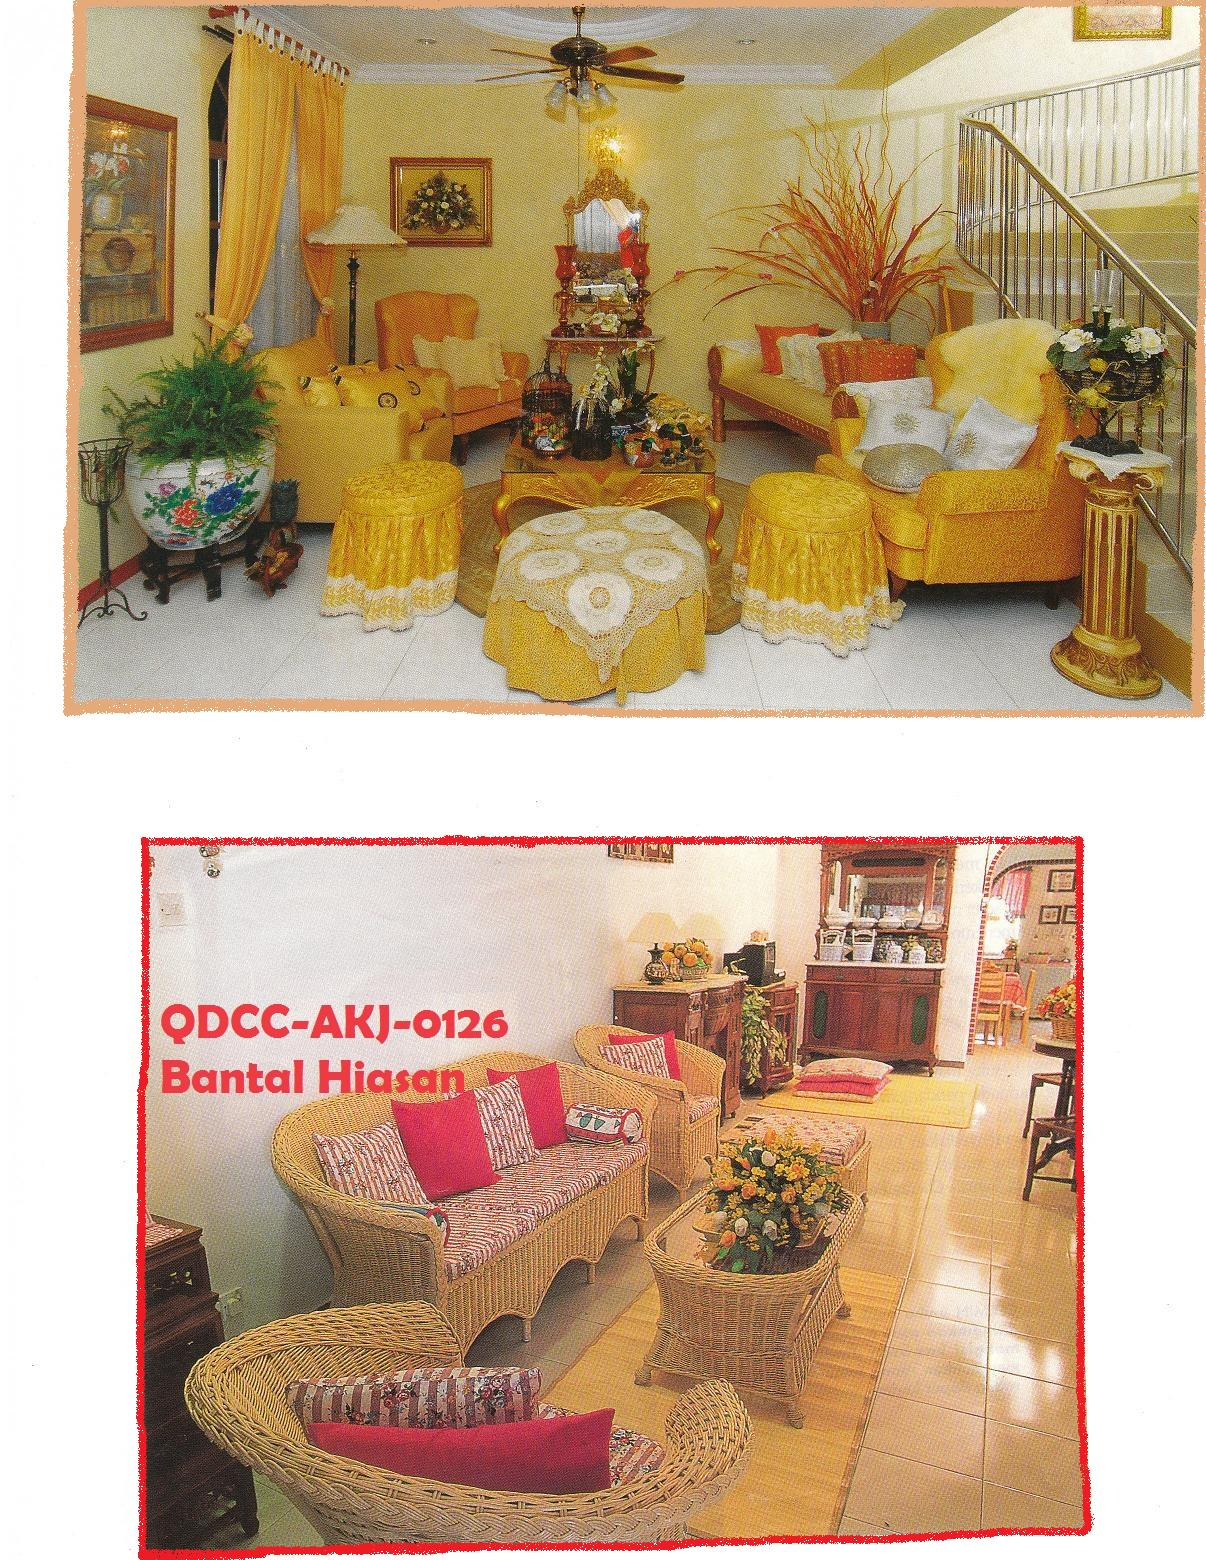 & Craft Design - BY GALERI AINA : ANEKA BANTAL HIASAN (CONTOH 1